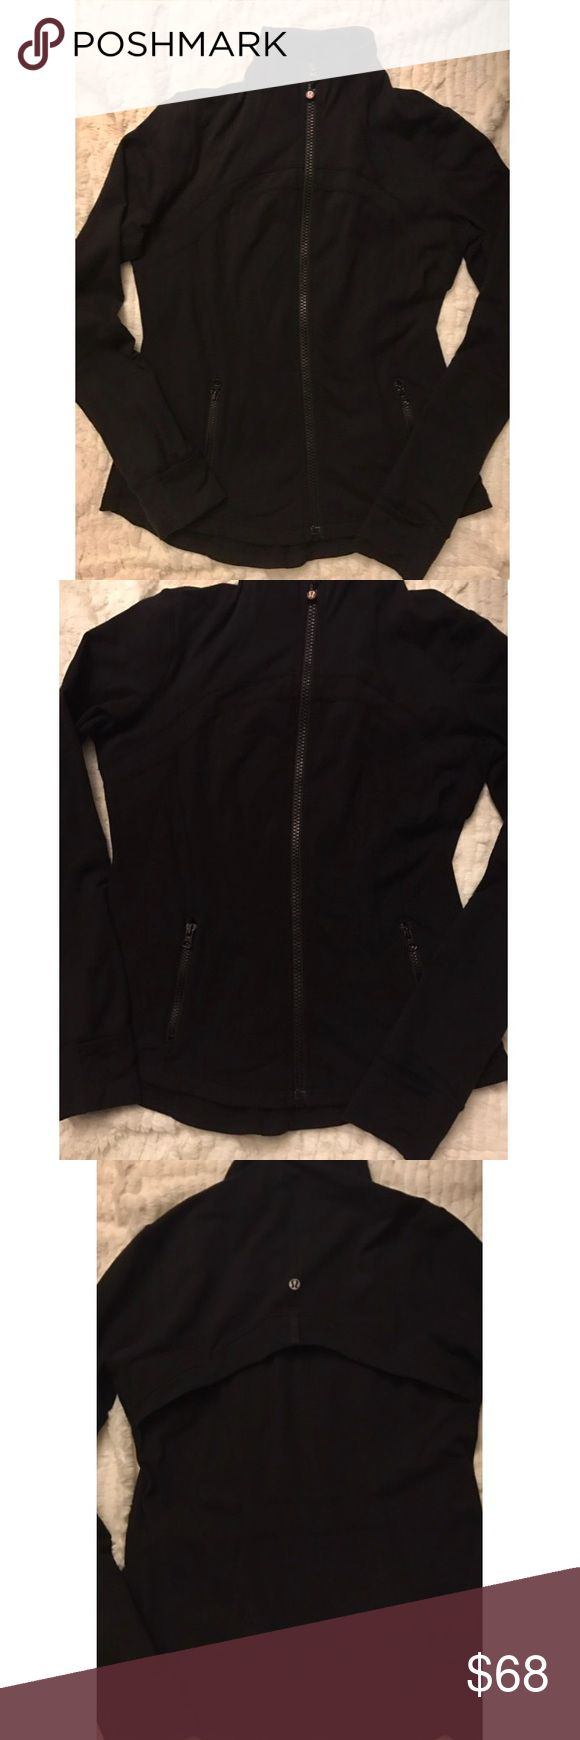 Lululemon Black Define Jacket Lululemon black define jacket. Such a flattering fit and the perfect addition to your workout gear or any athleisure outfit! Size 10 pre-loved with some minimal signs of wear (please reference photos!) like pilling under one of the underarms, but this jacket still looks great with so much life left in it! lululemon athletica Jackets & Coats